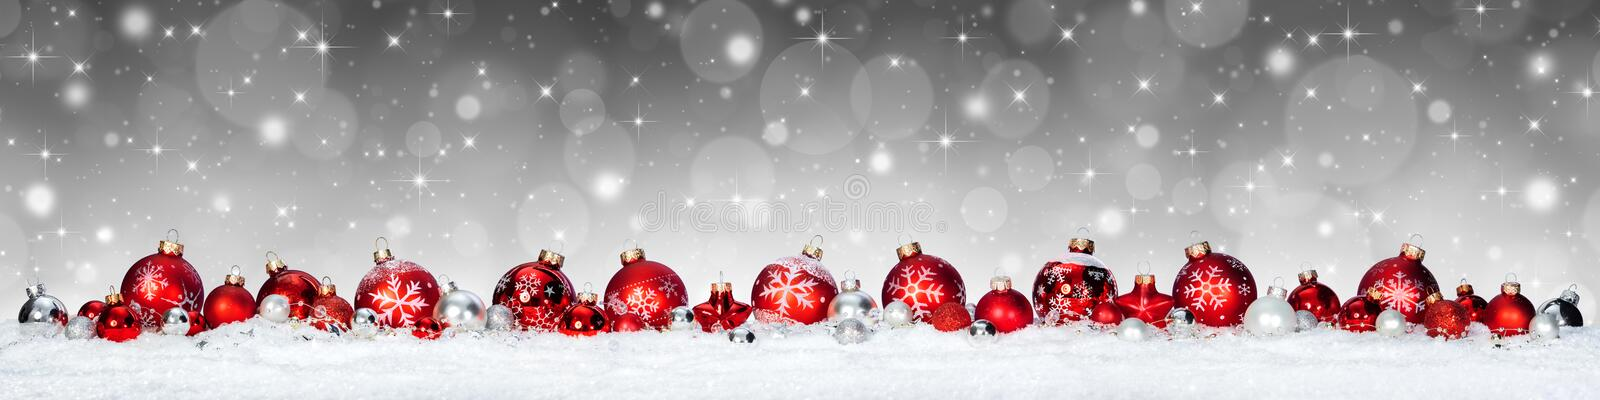 Christmas Banner - Red Spheres royalty free stock images